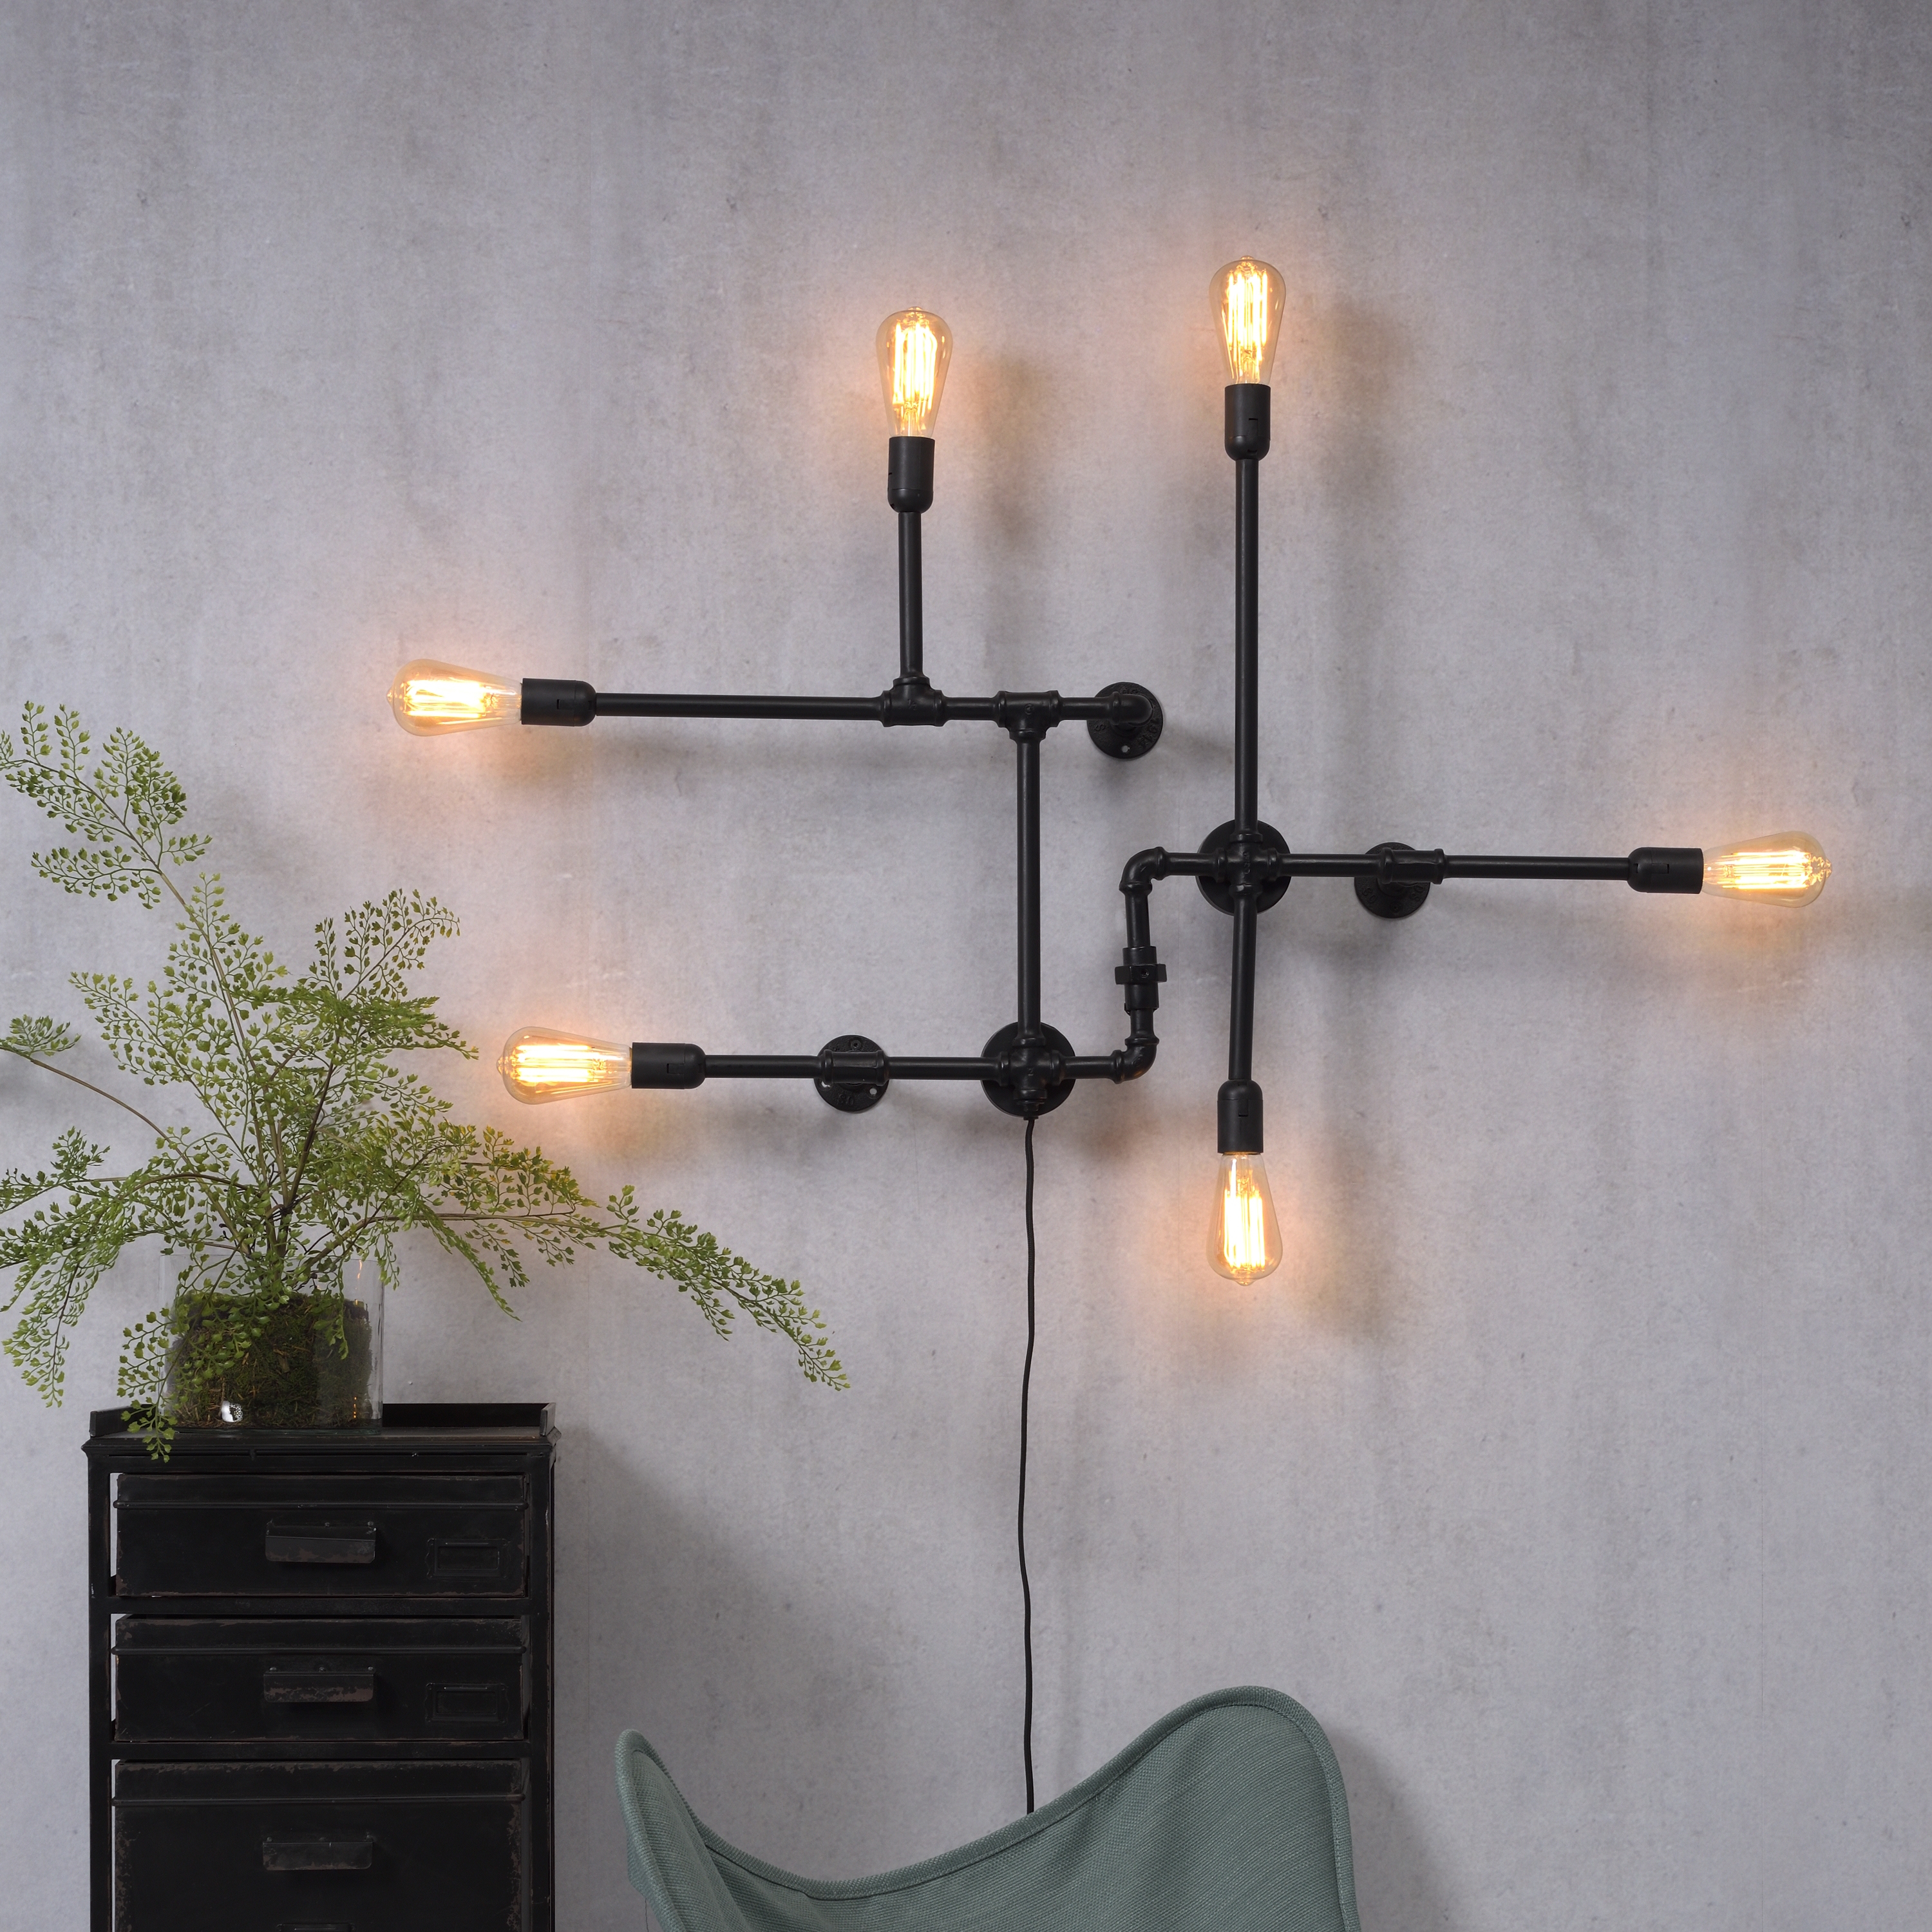 Its About Romi.Wall Light Nashville W Black O52cm H63cm It S About Romi